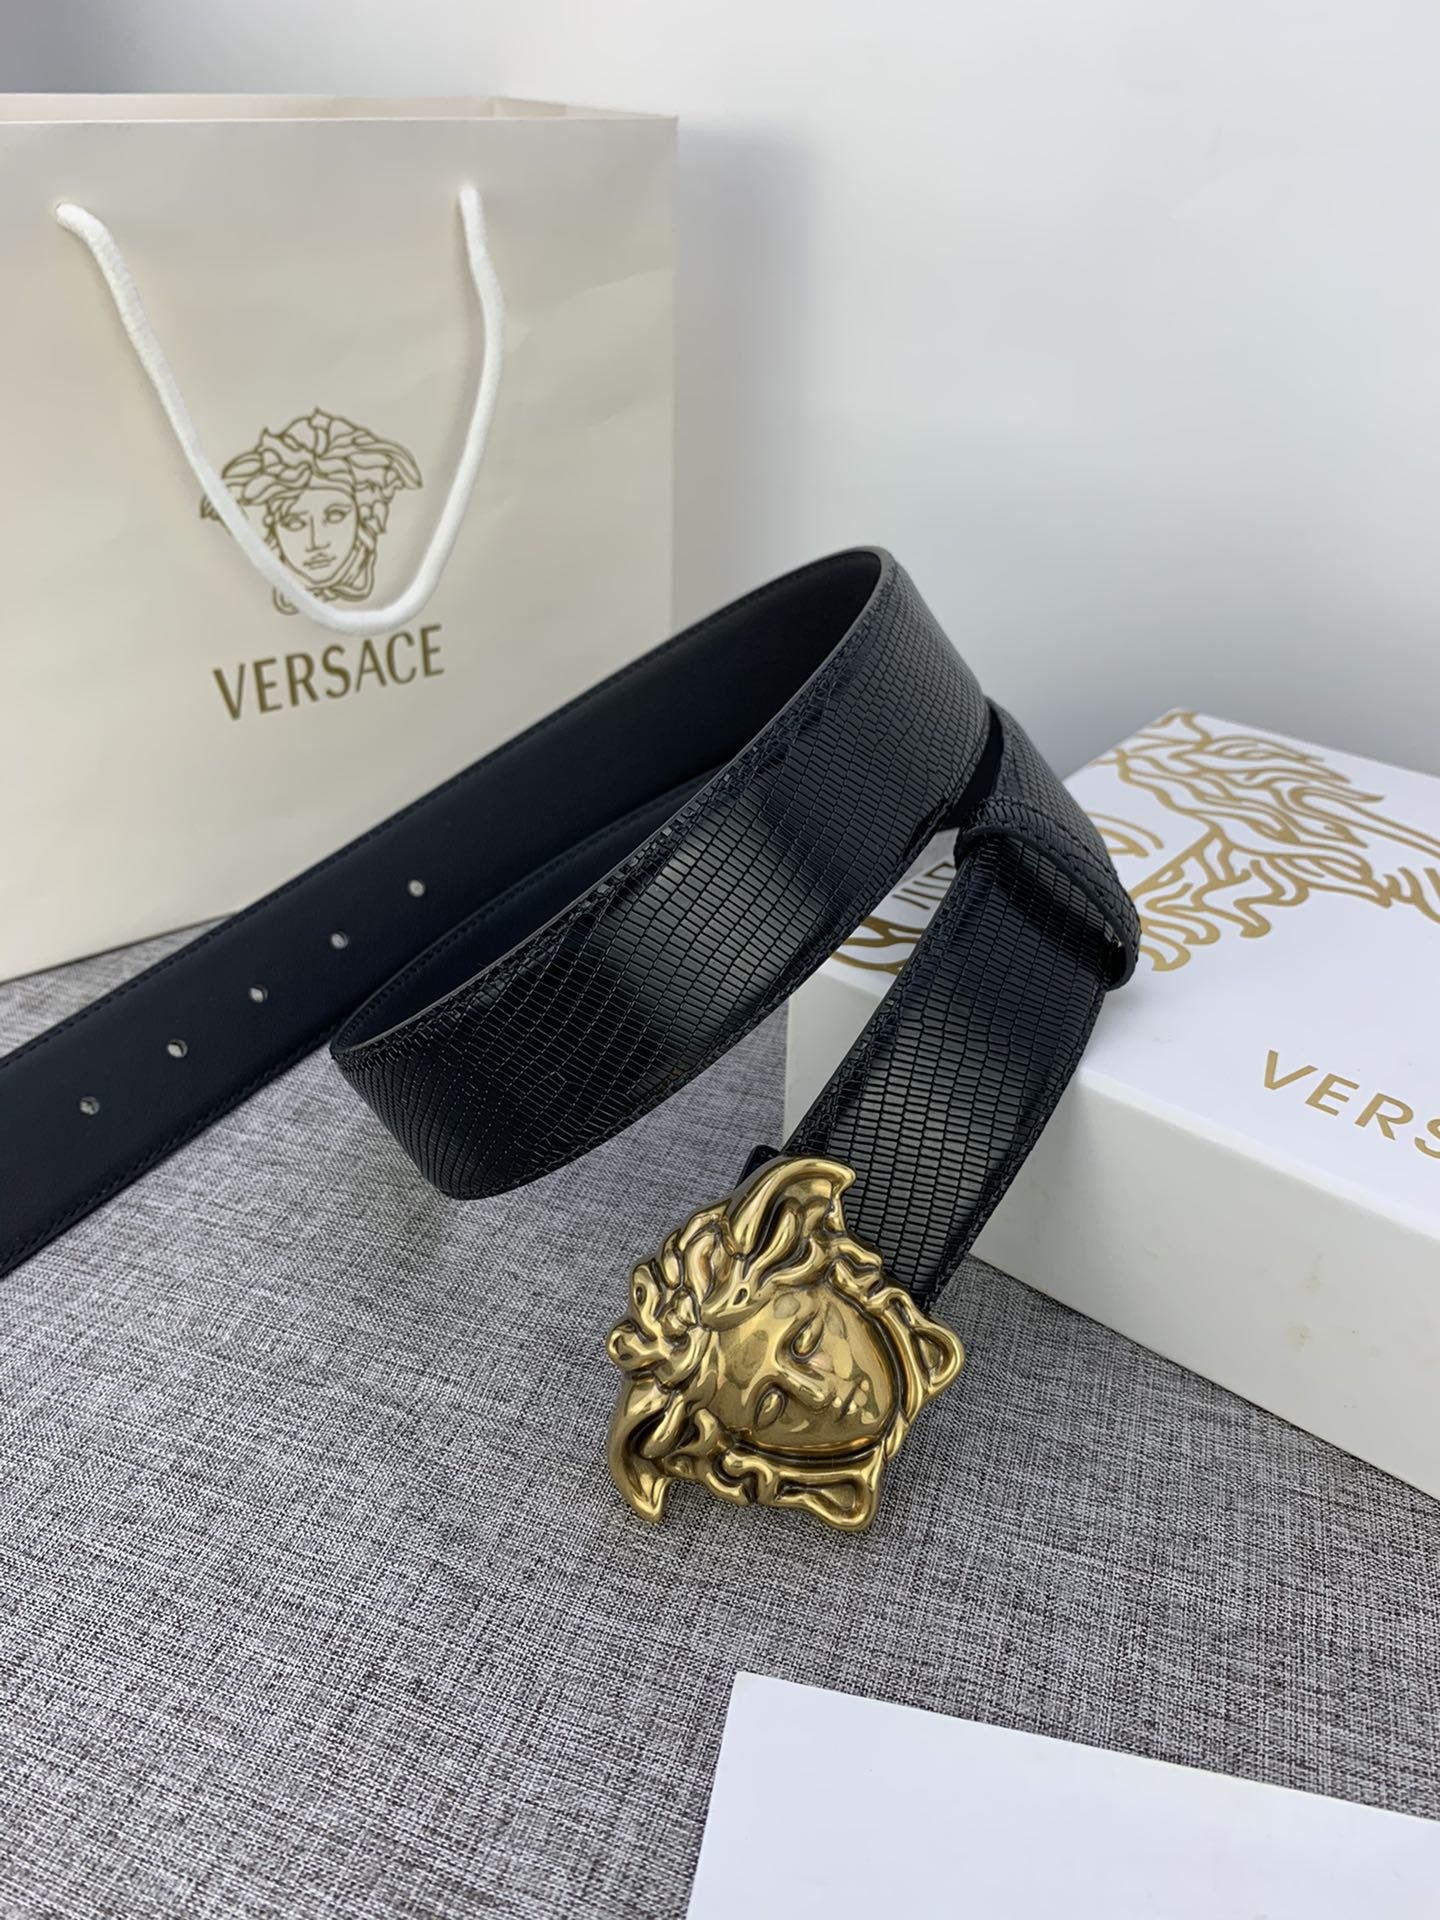 Cheap Replica Versace Men Reversible Leather Belt Width 4cm With Gold Buckle 025